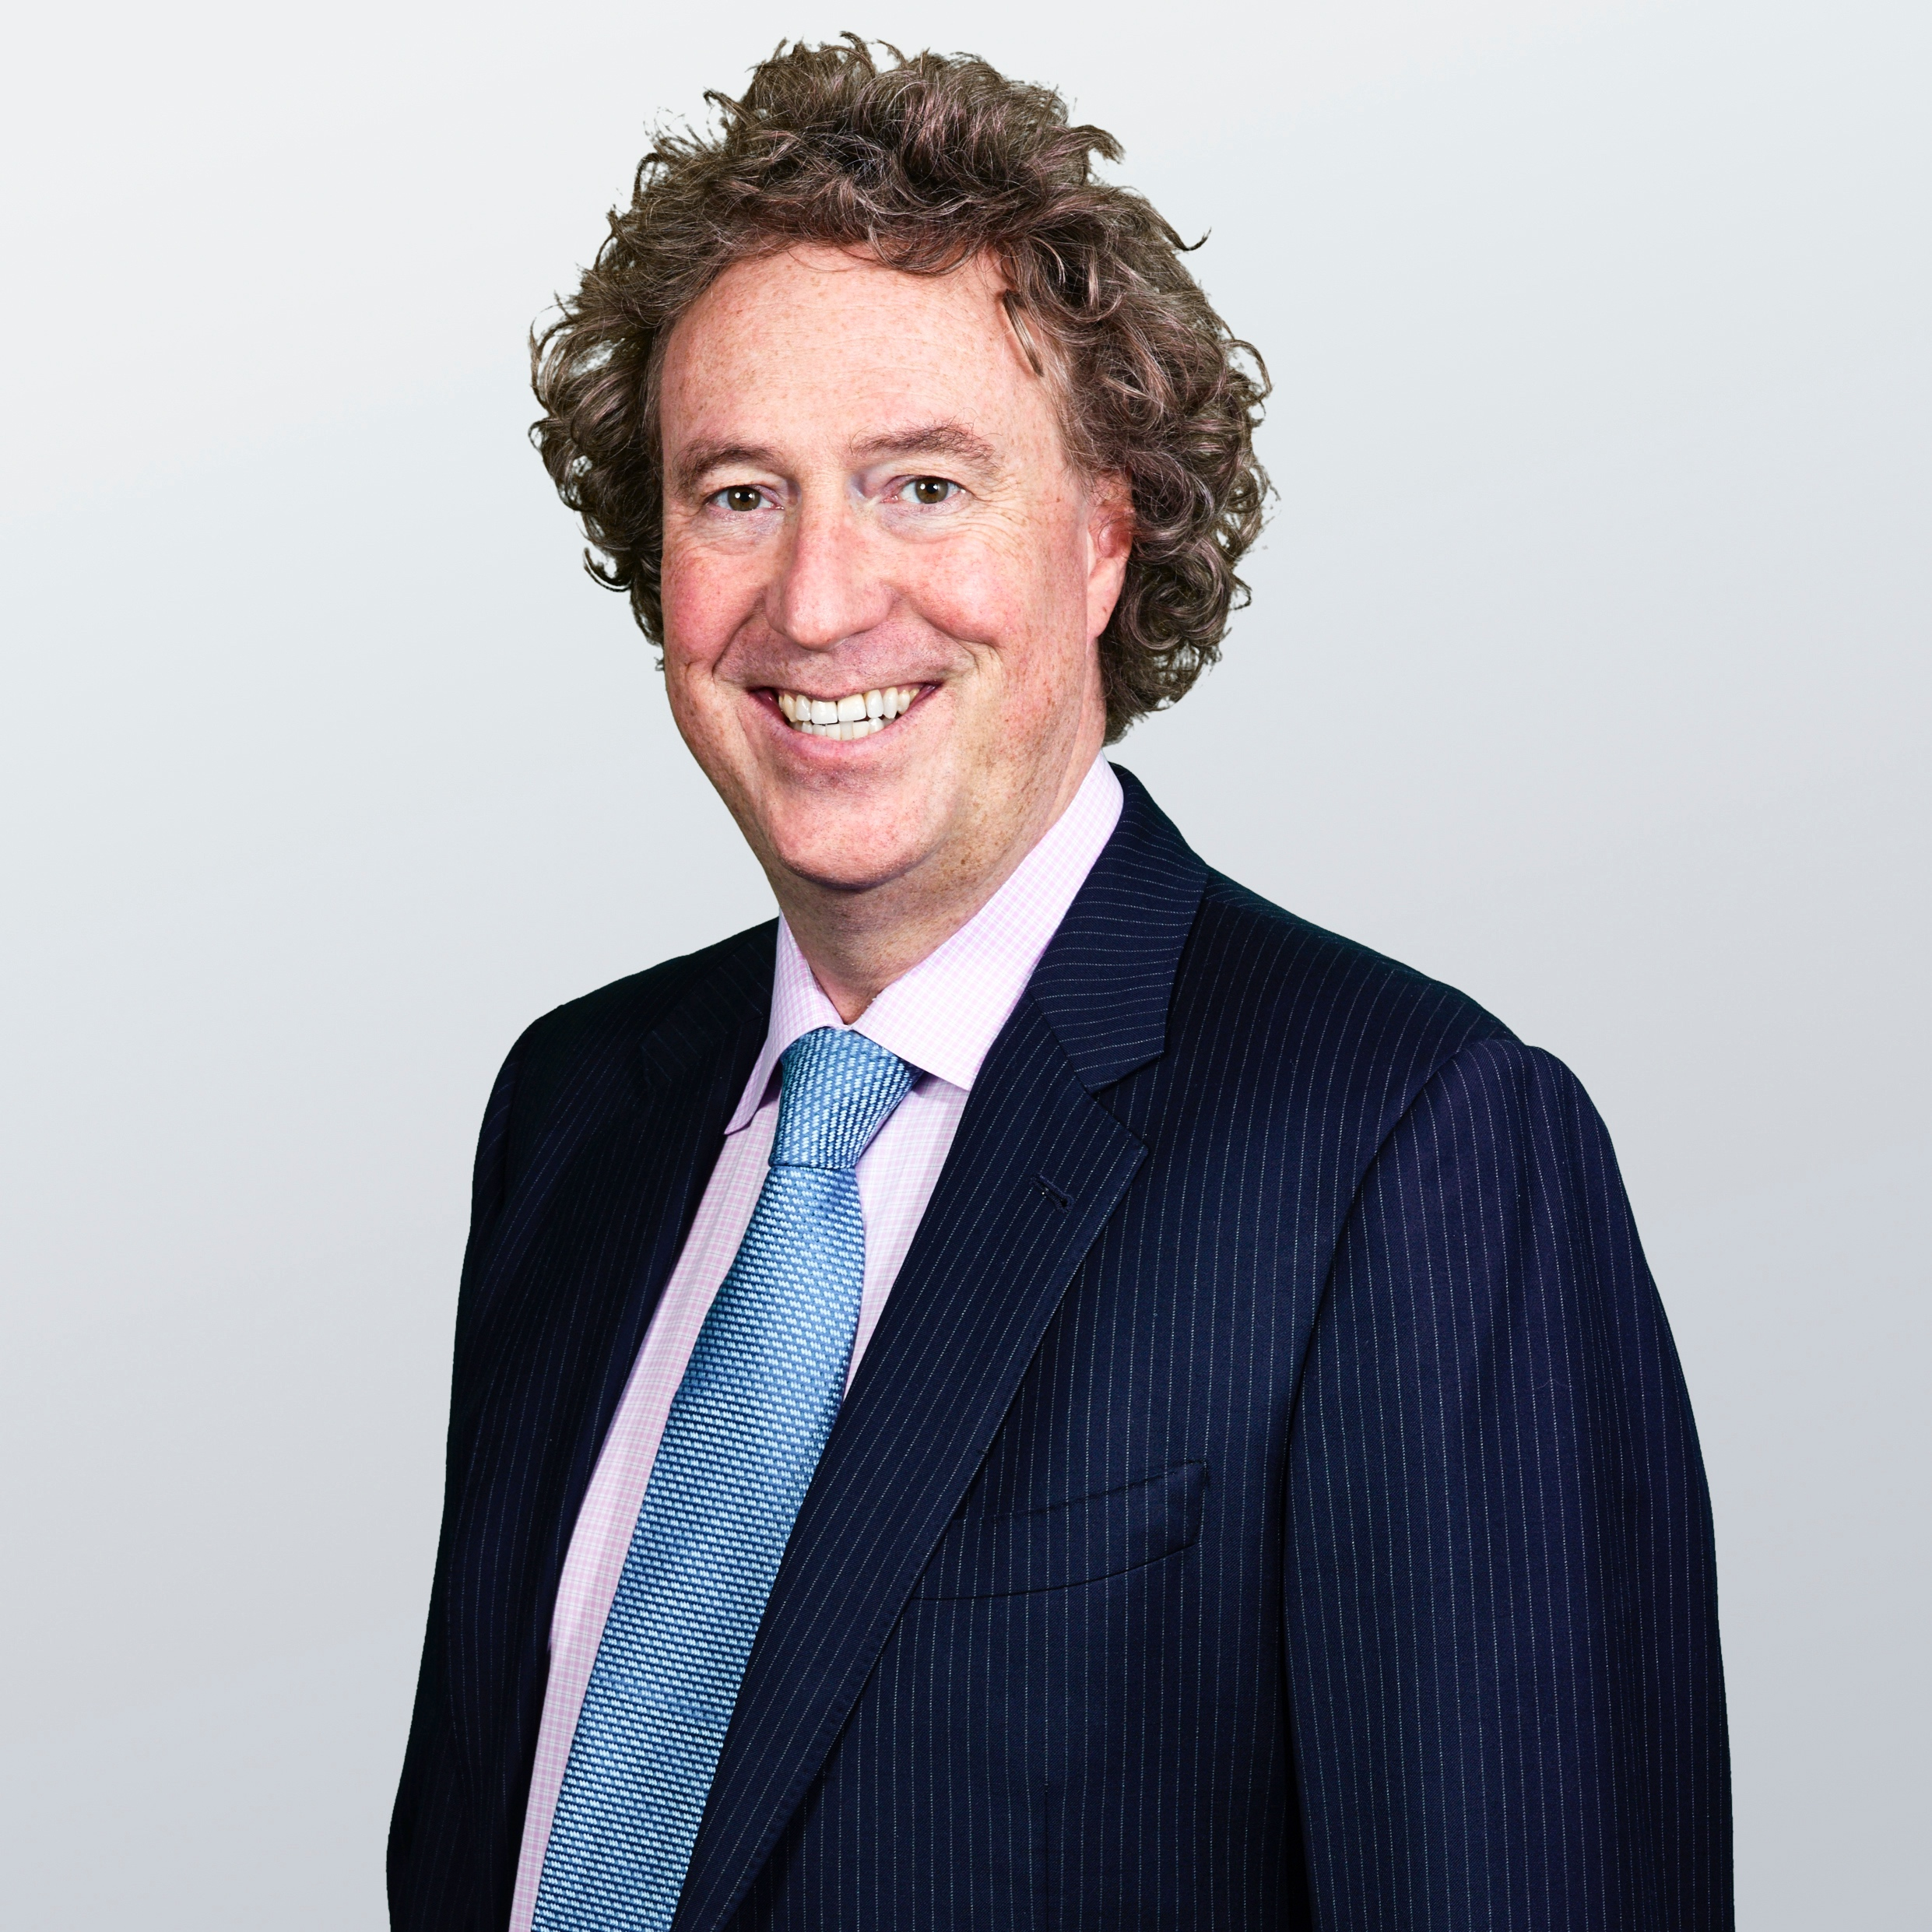 Andrew Cumming, Founder and Managing Partner of Toronto-based Cumming & Partners.